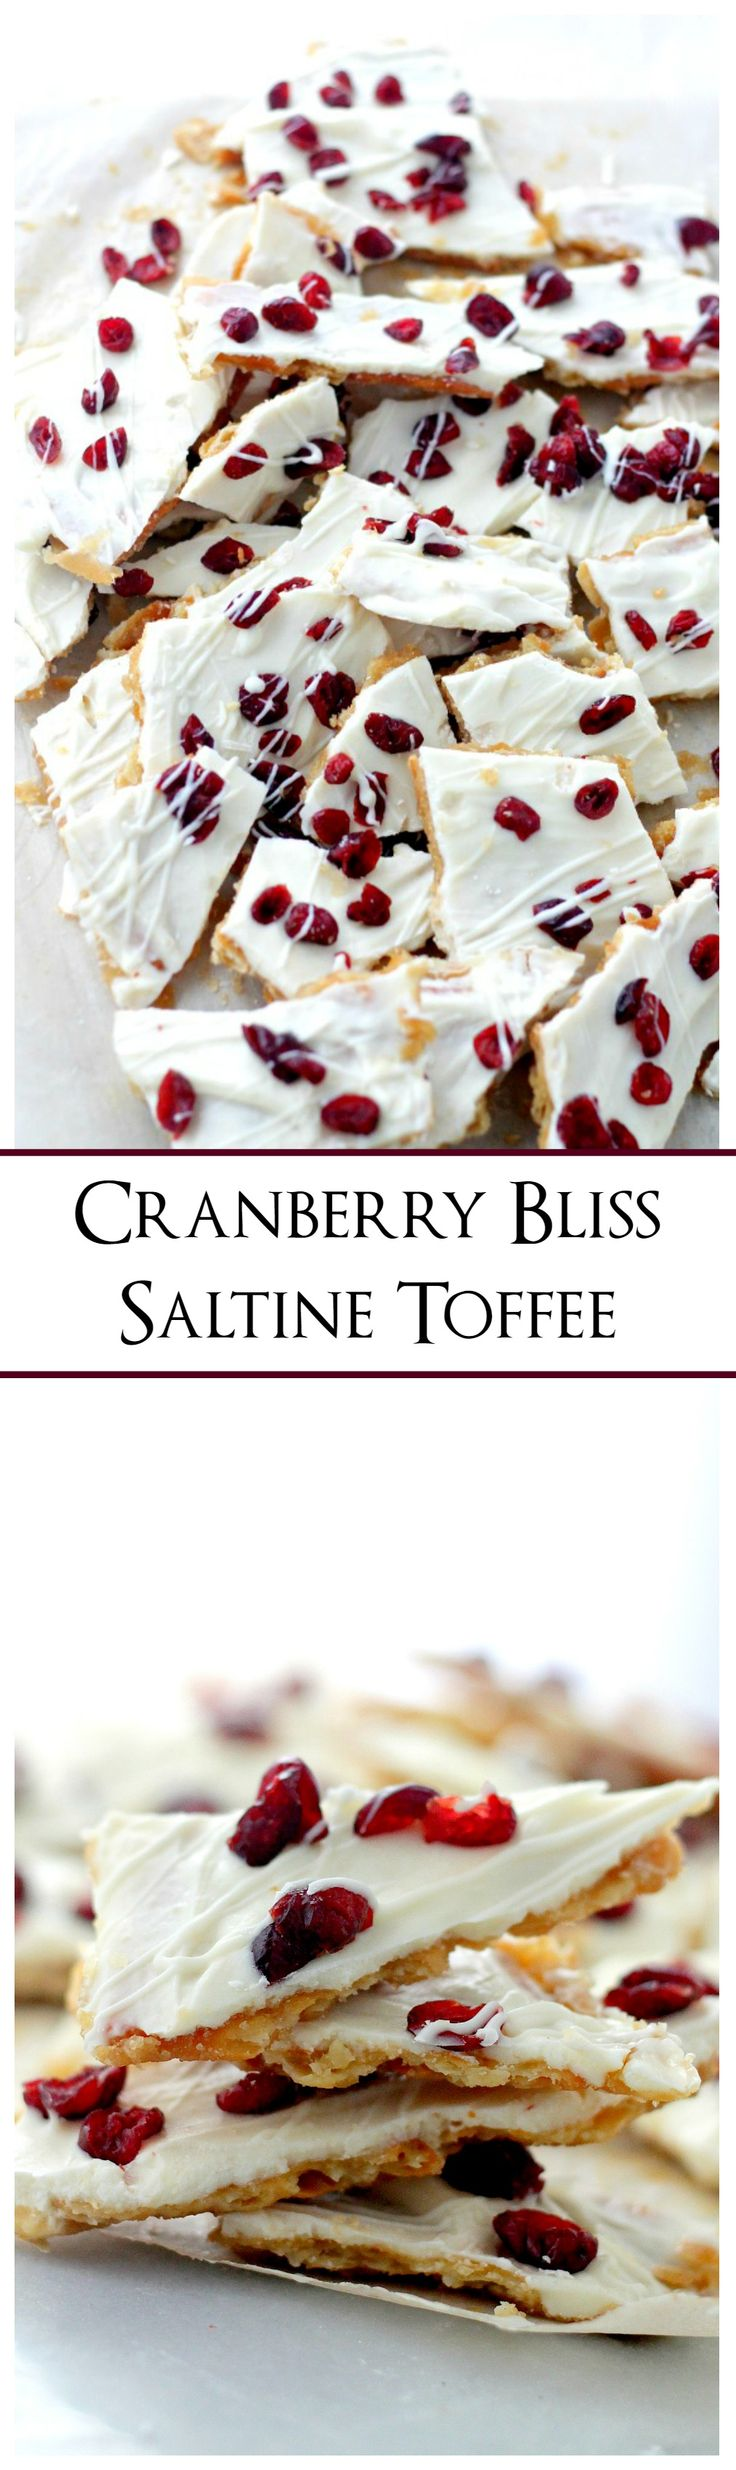 Cranberry Bliss Saltine Toffee | www.diethood.com | Saltine Crackers covered with sweet toffee, melted white chocolate and beautiful, tart cranberries.